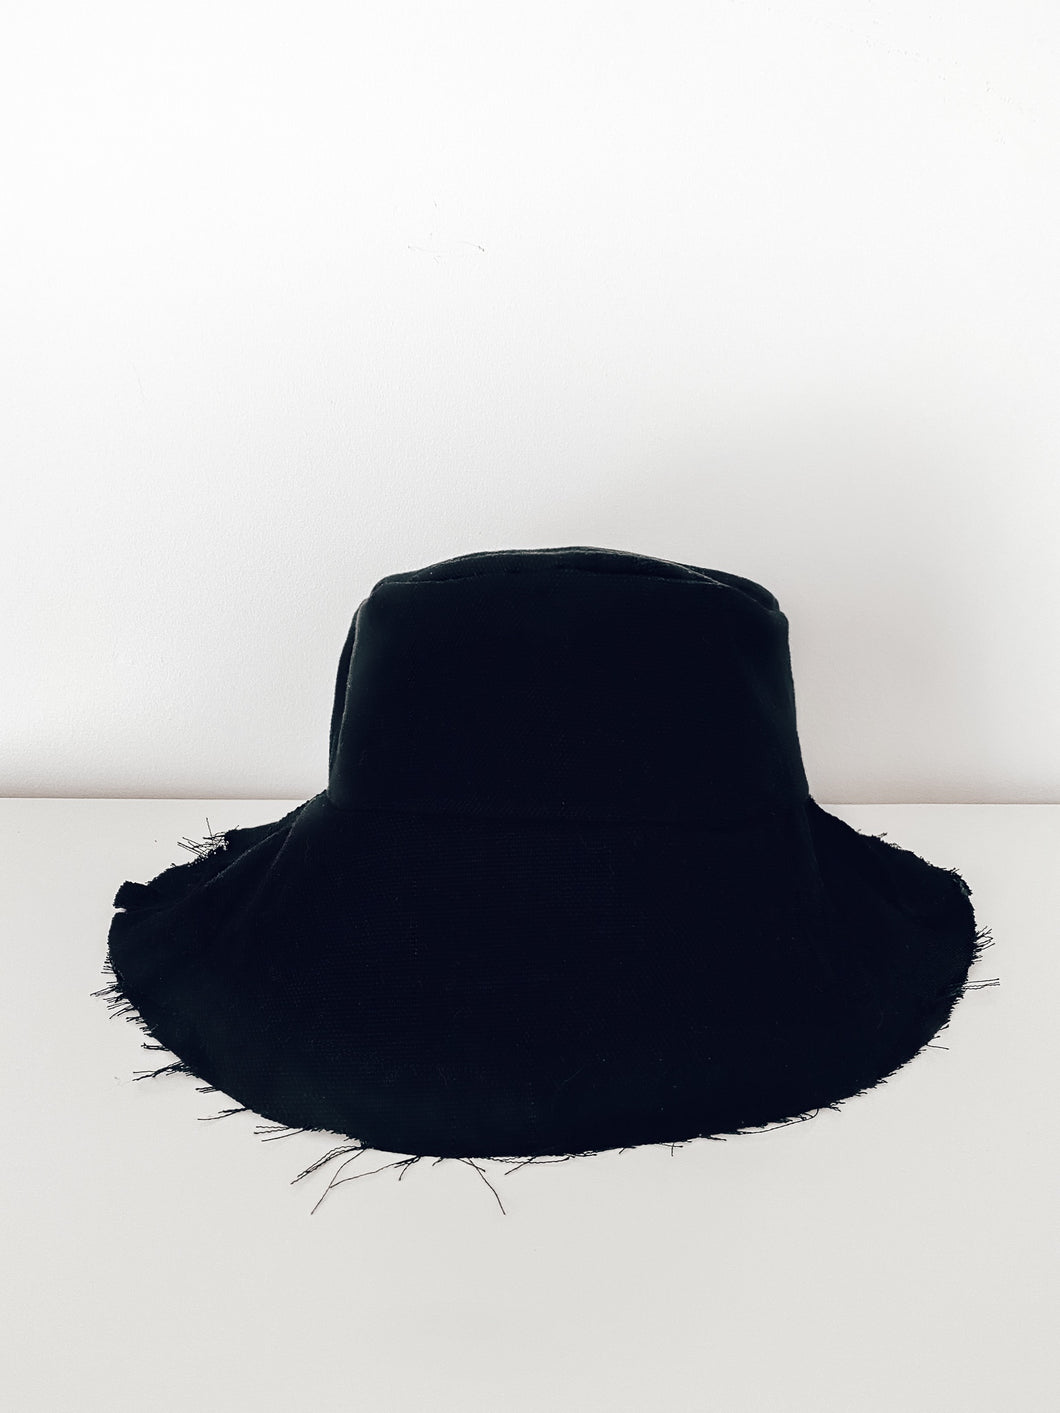 MADE TO ORDER Upcycled Raw Hem Black Denim Bucket Hat